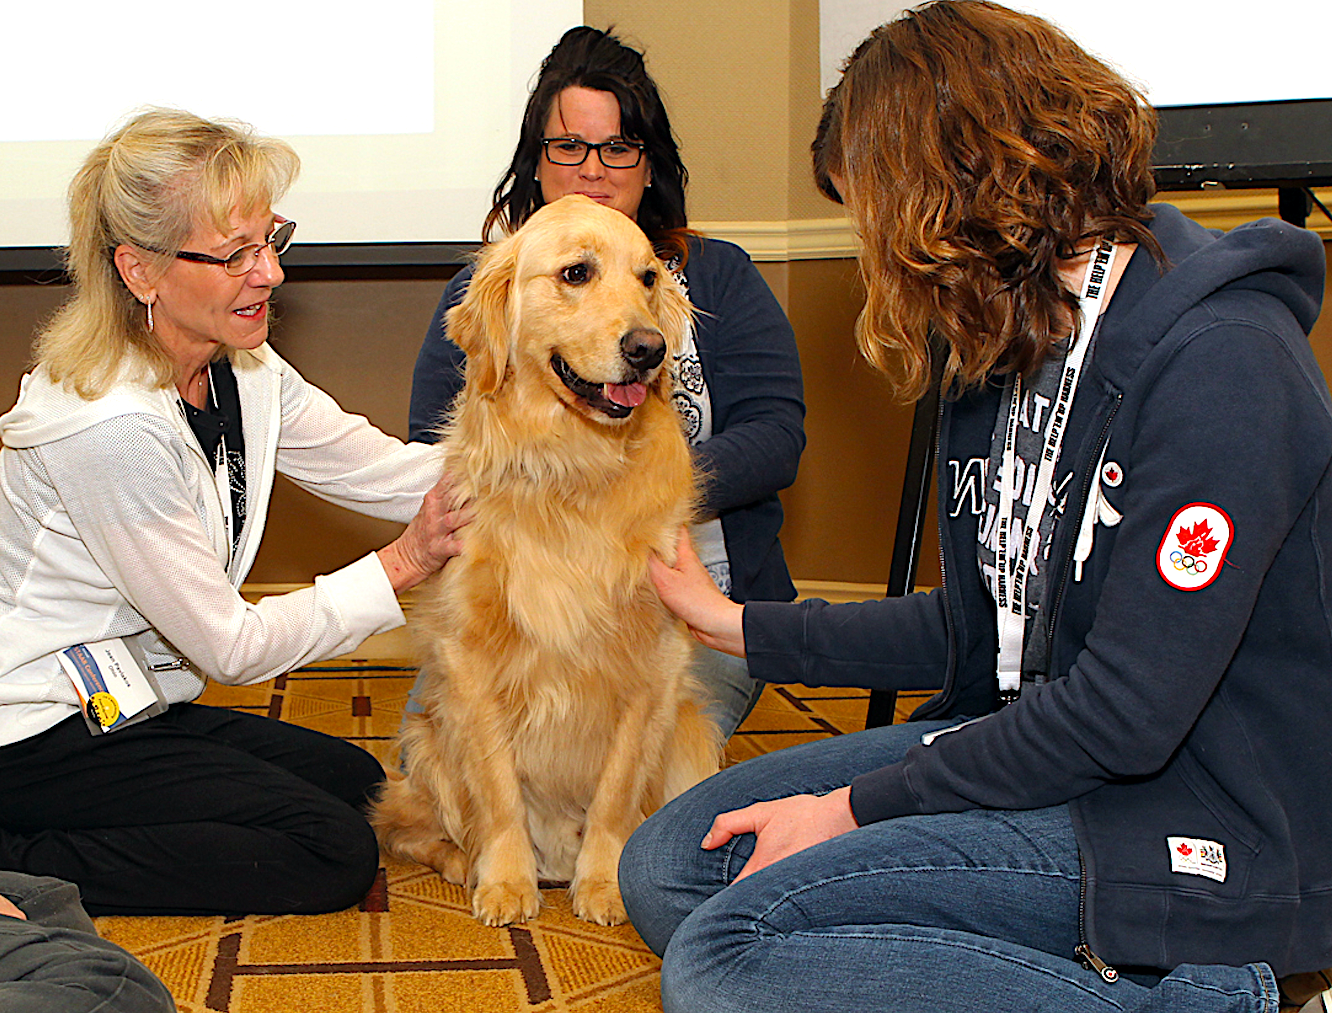 PHYSICAL THERAPIST - EXPERT IN REHAB OF ATHLETES, SENIOR PETS, & MORE